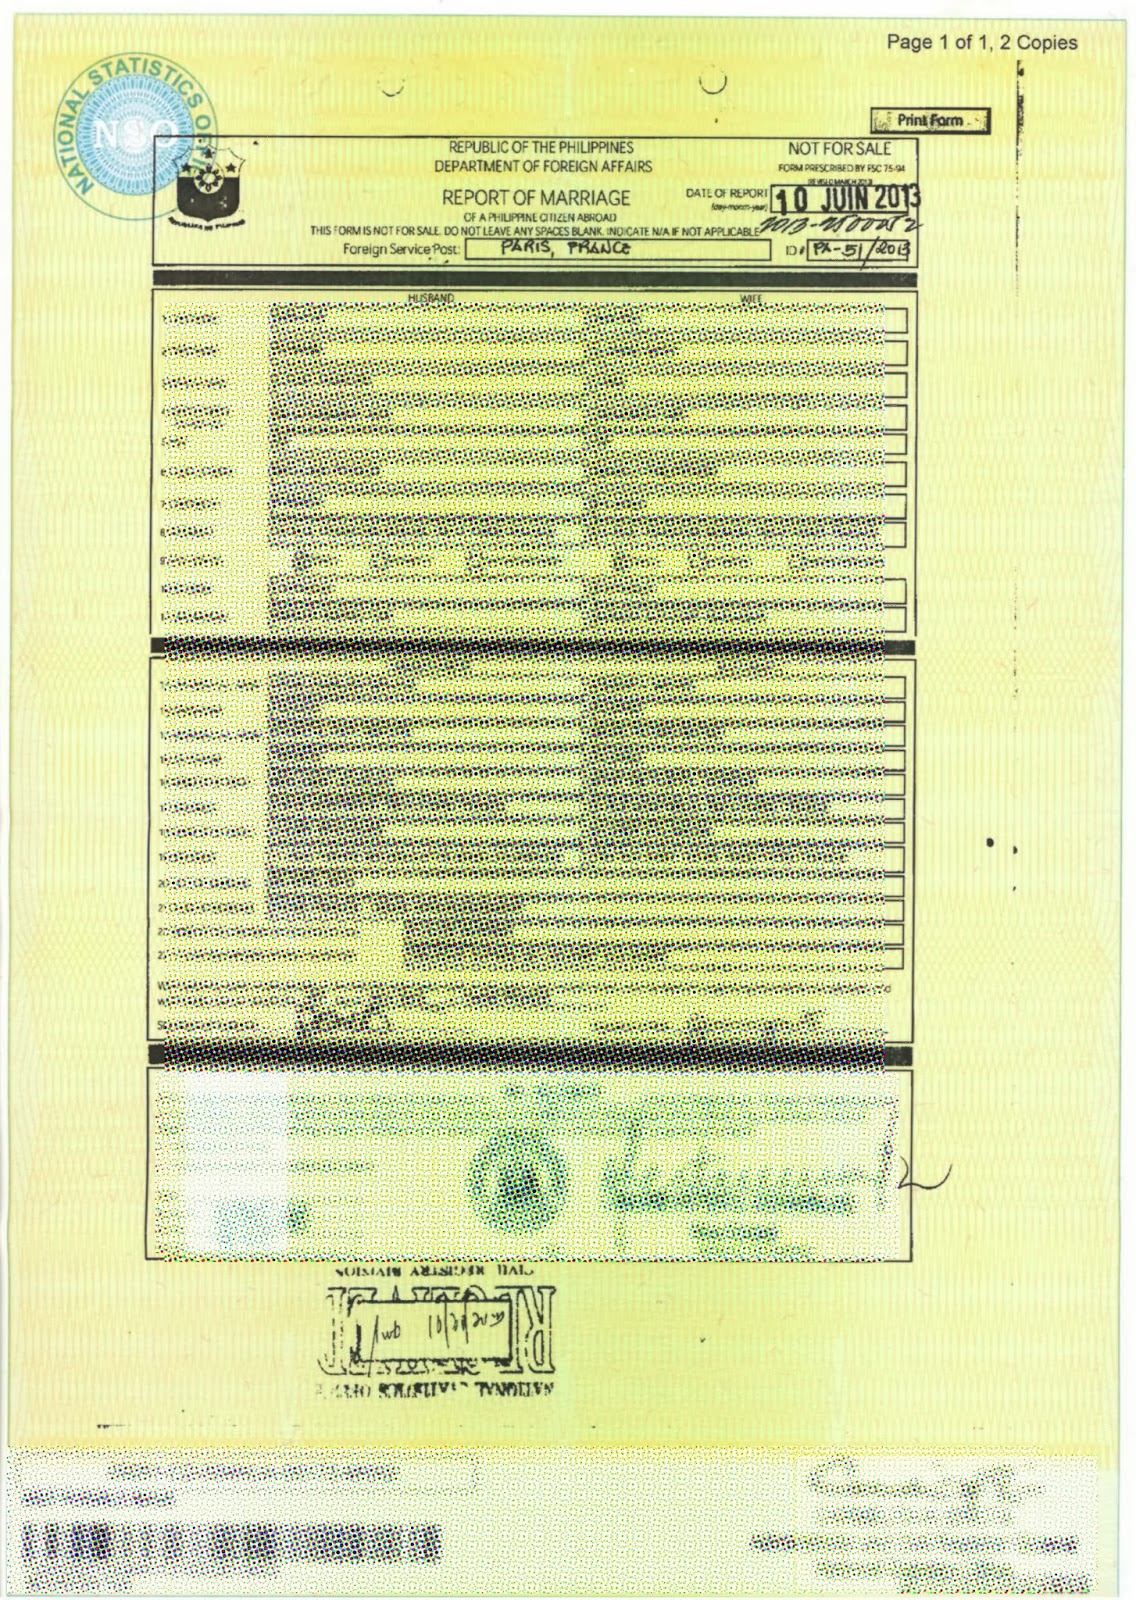 kawasaki uk dating certificate Dvla dating certificates honda suzuki kawasaki other both parts of the german logbookdo i still need a dating certificate to register it in the uk.